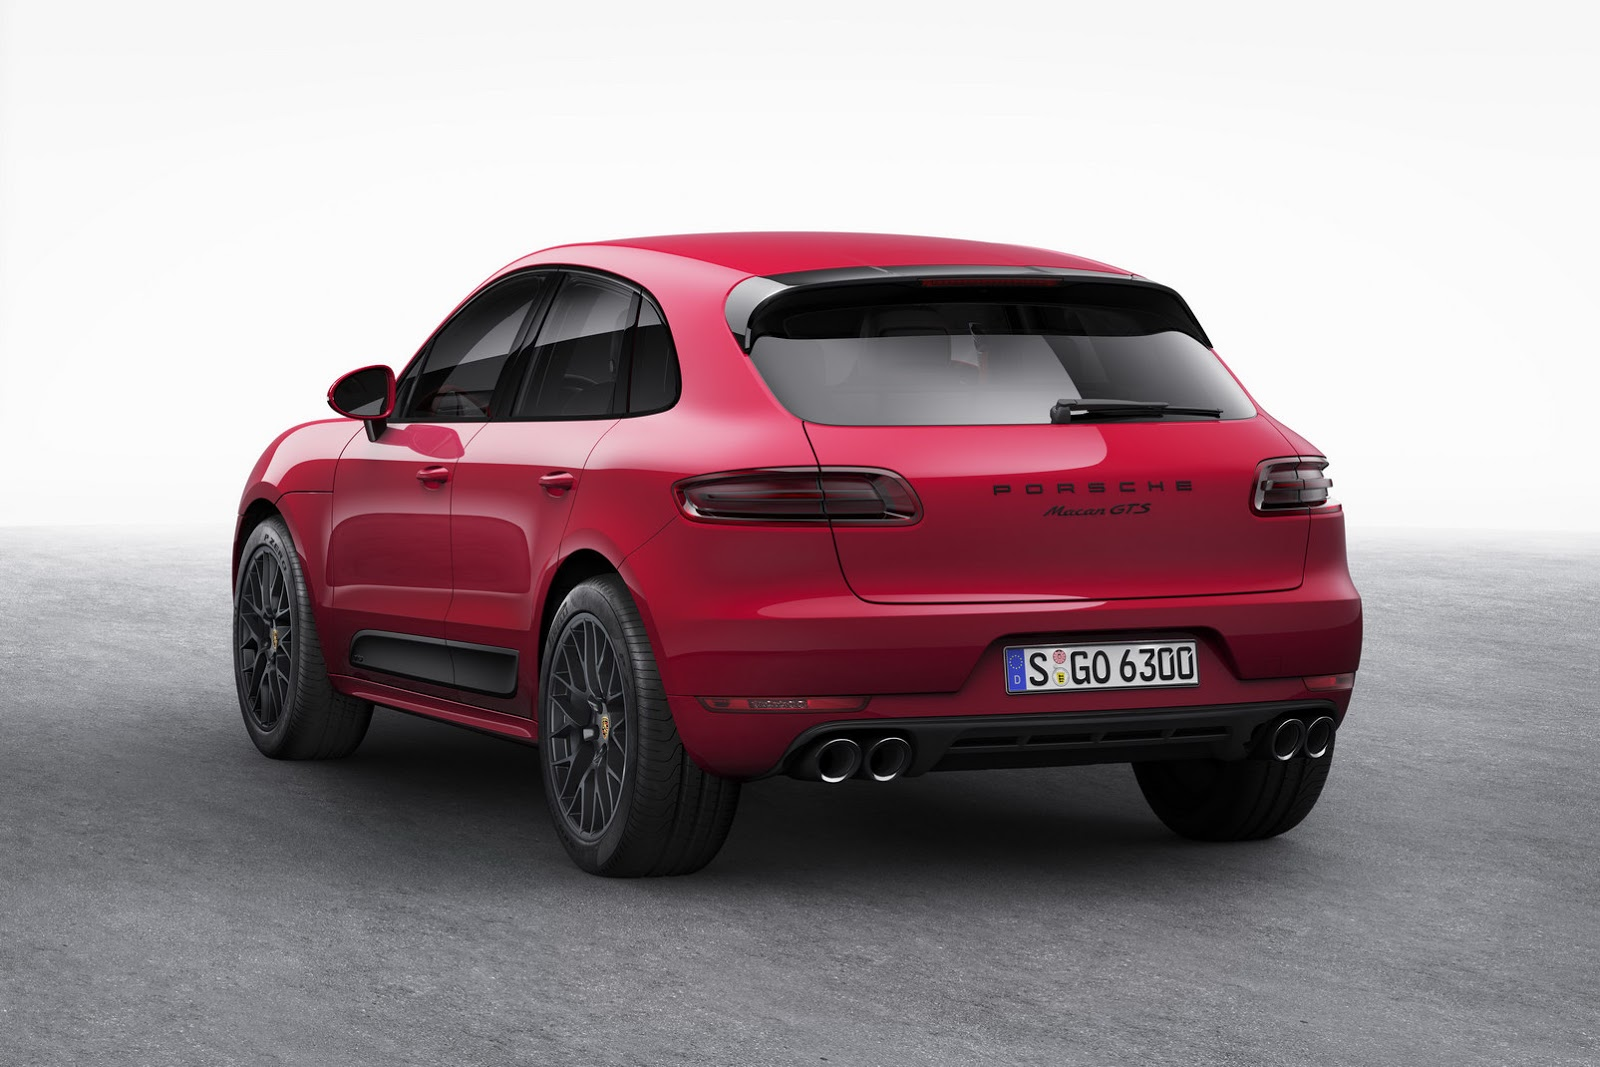 new porsche macan gts fills the void between s and turbo models carscoops. Black Bedroom Furniture Sets. Home Design Ideas